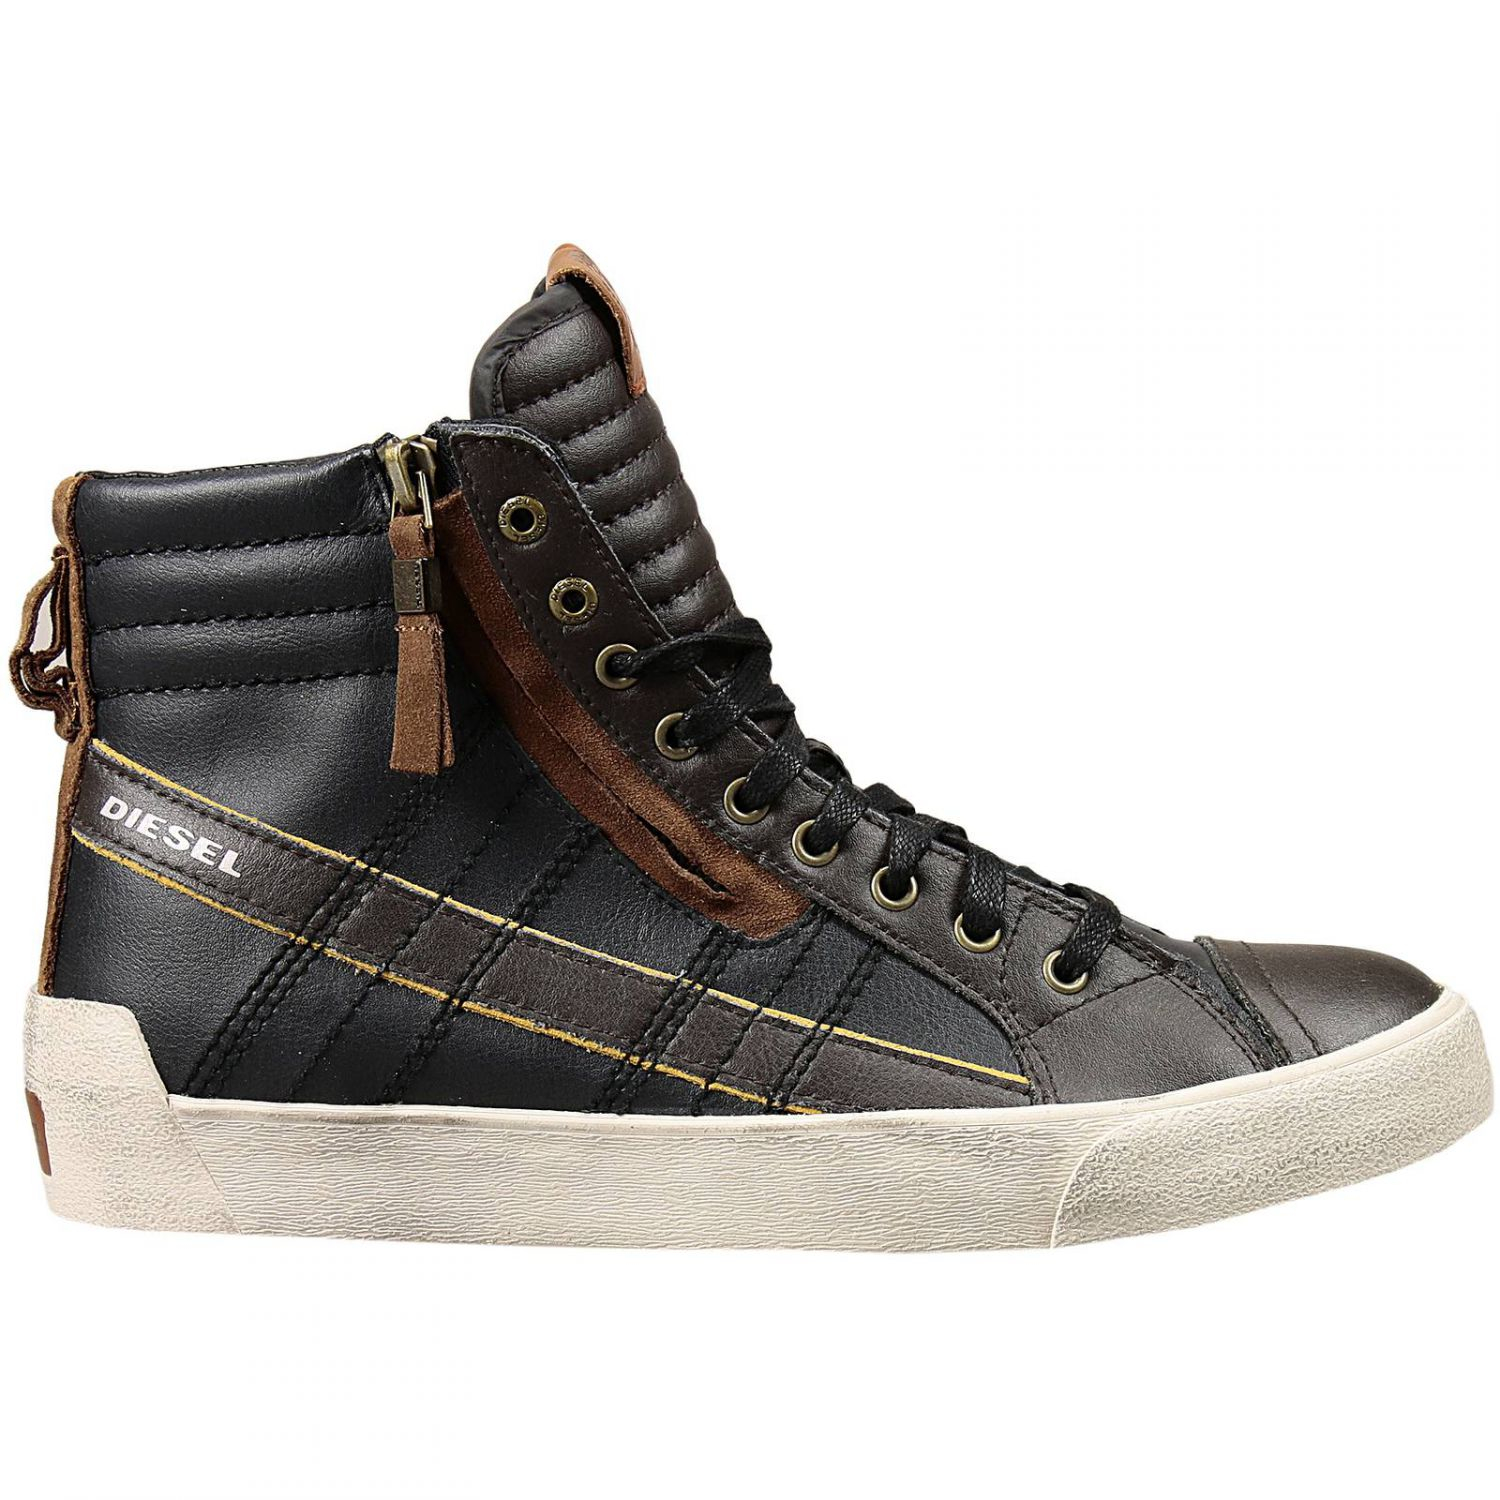 Lyst - DIESEL High-Top Leather Sneakers in Blue for Men